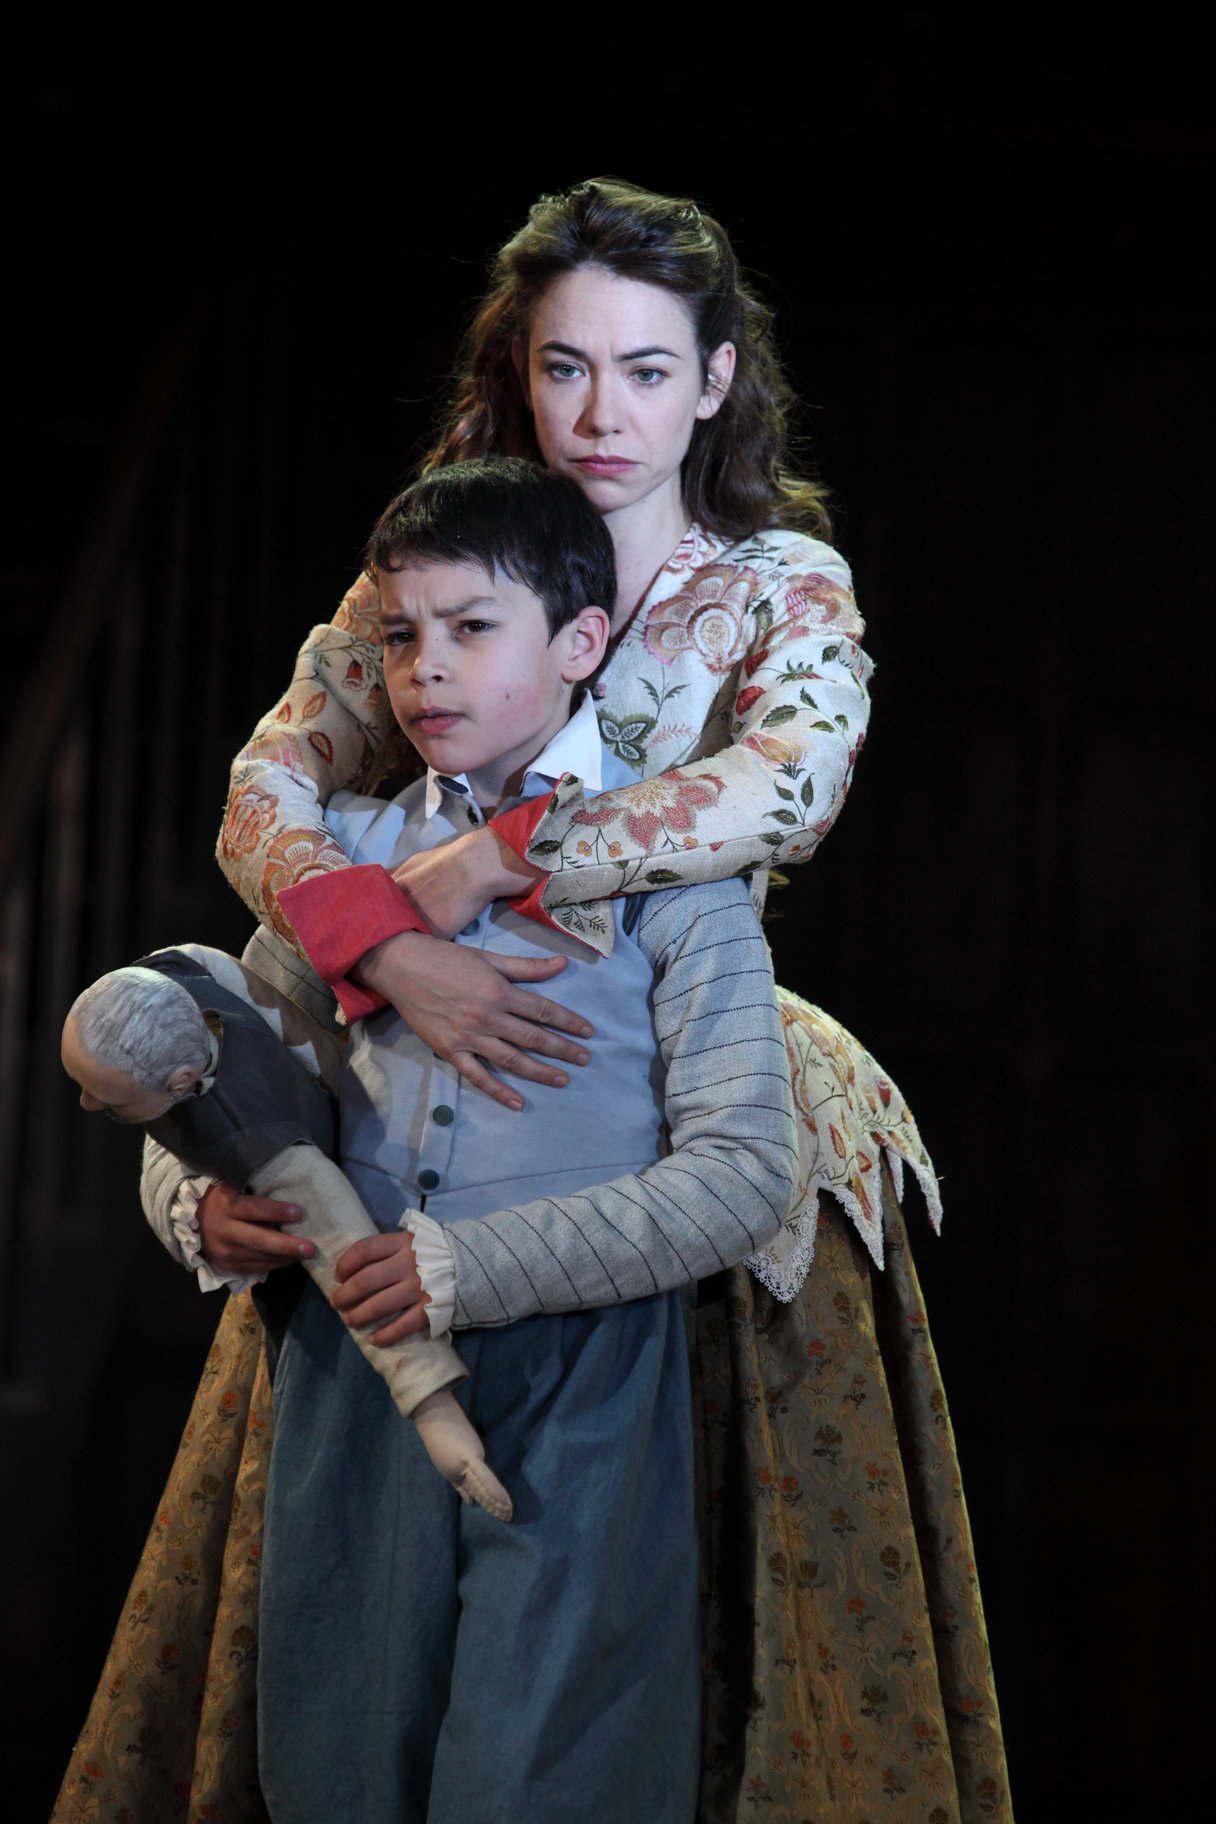 Lady Macduff holds onto her son.